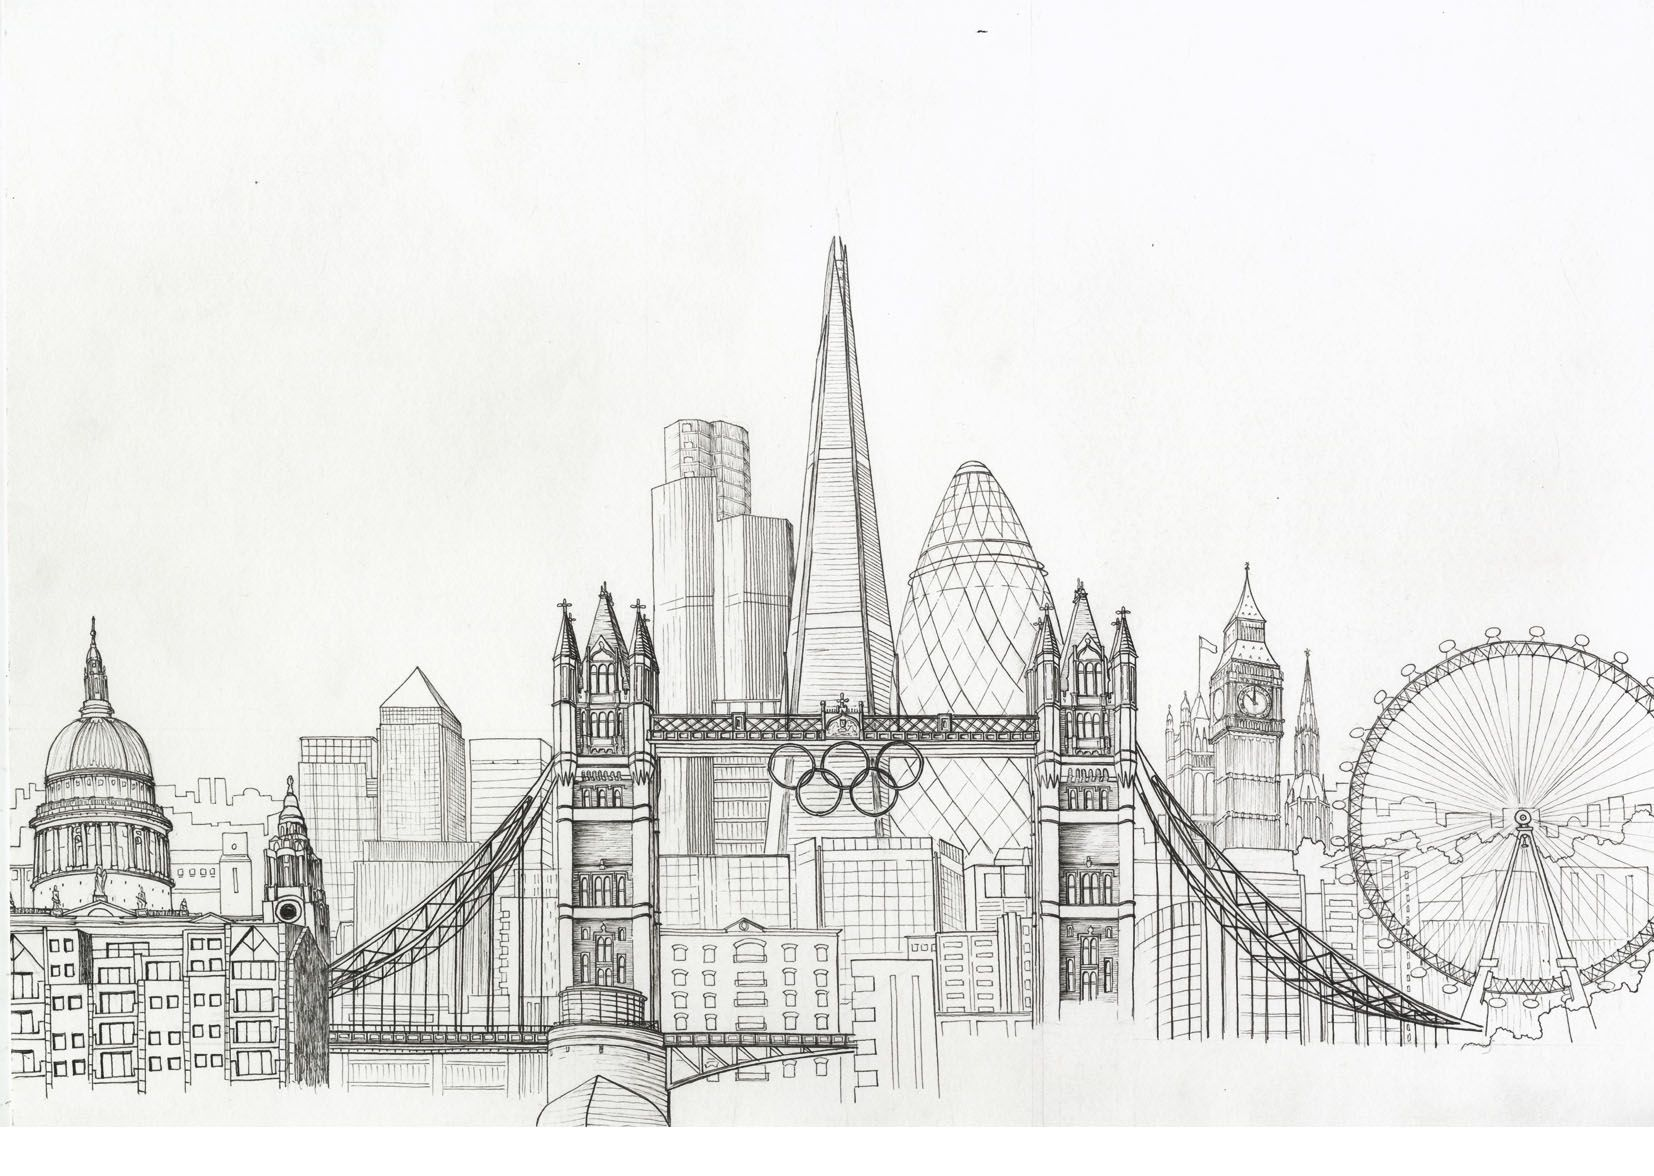 new york city skyline drawing | Sketches | Pinterest ...